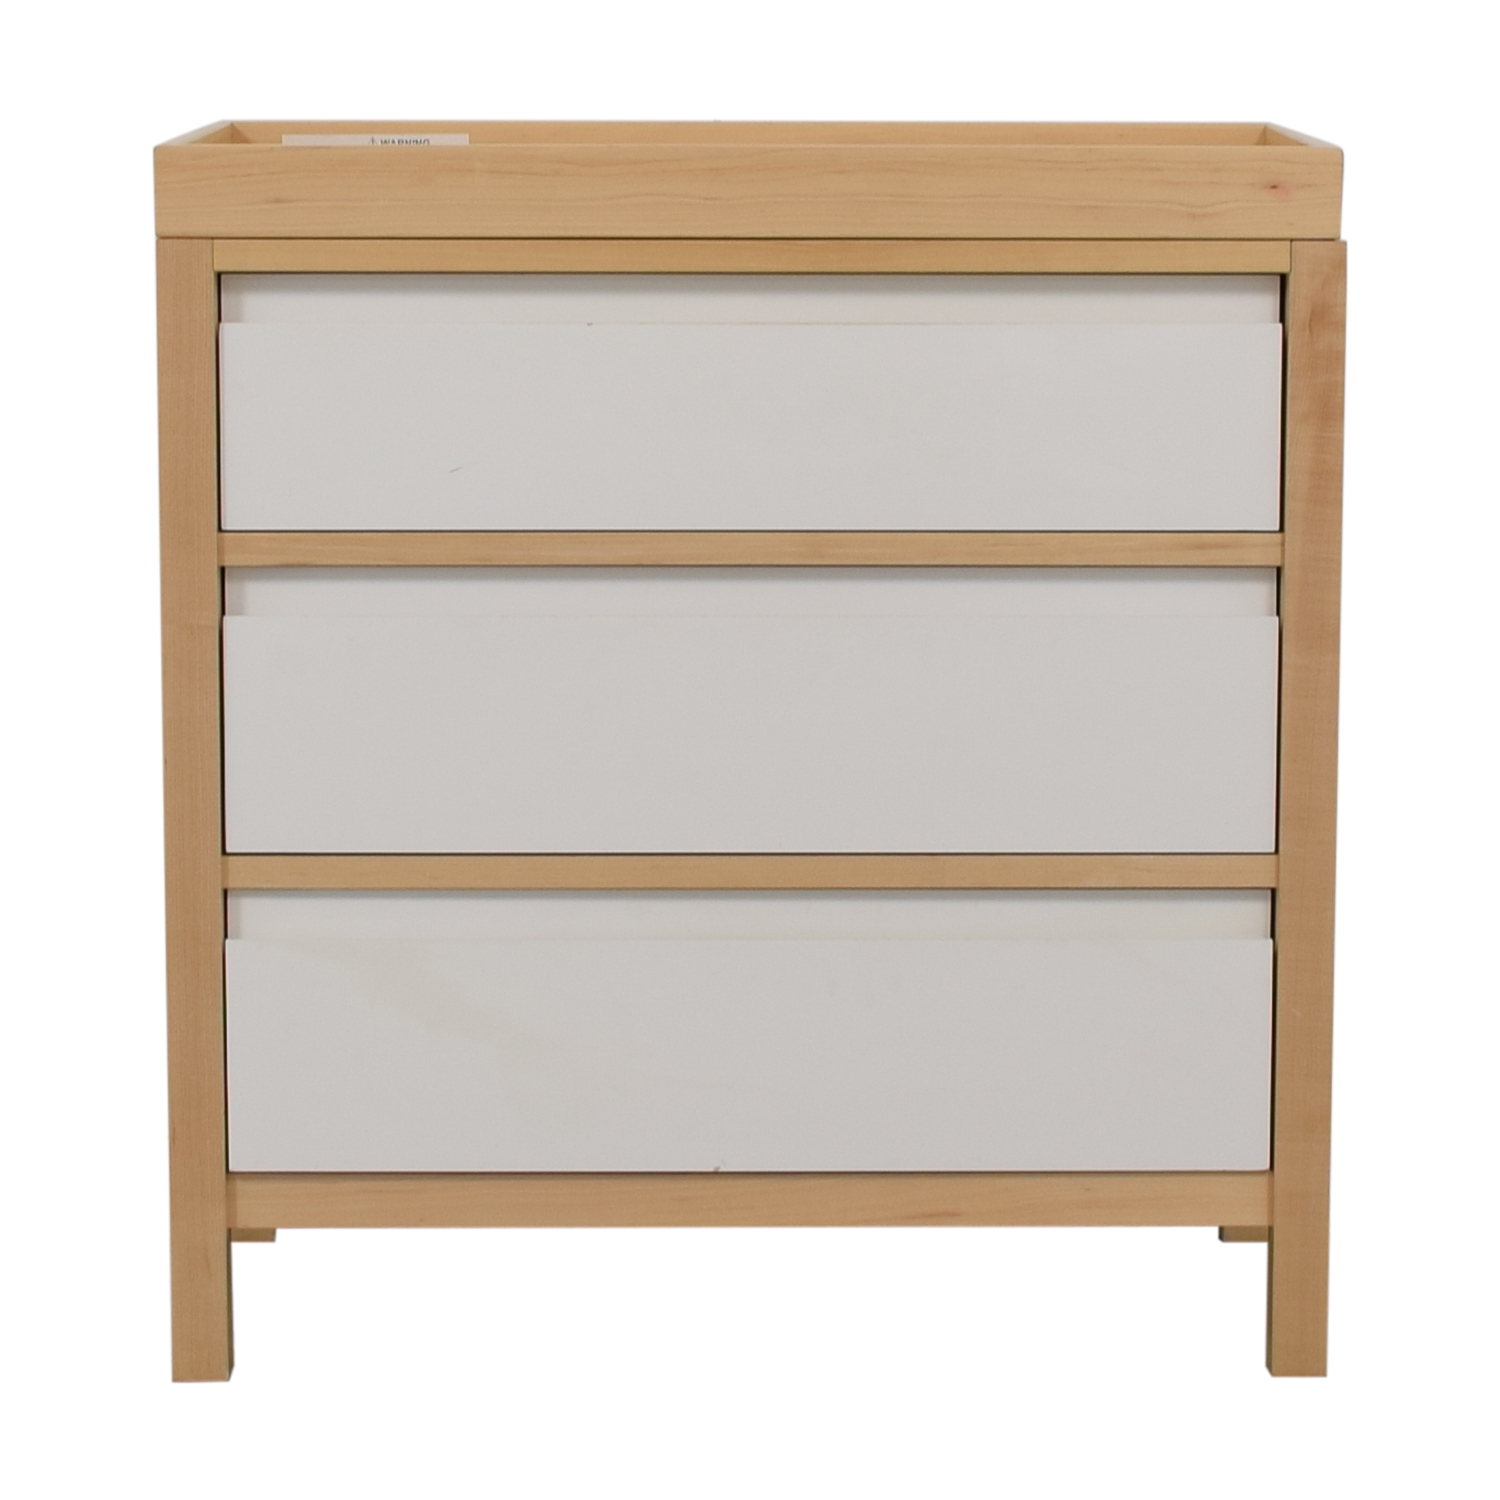 Land of Nod Land of Nod Dresser with Changing Table Top dimensions